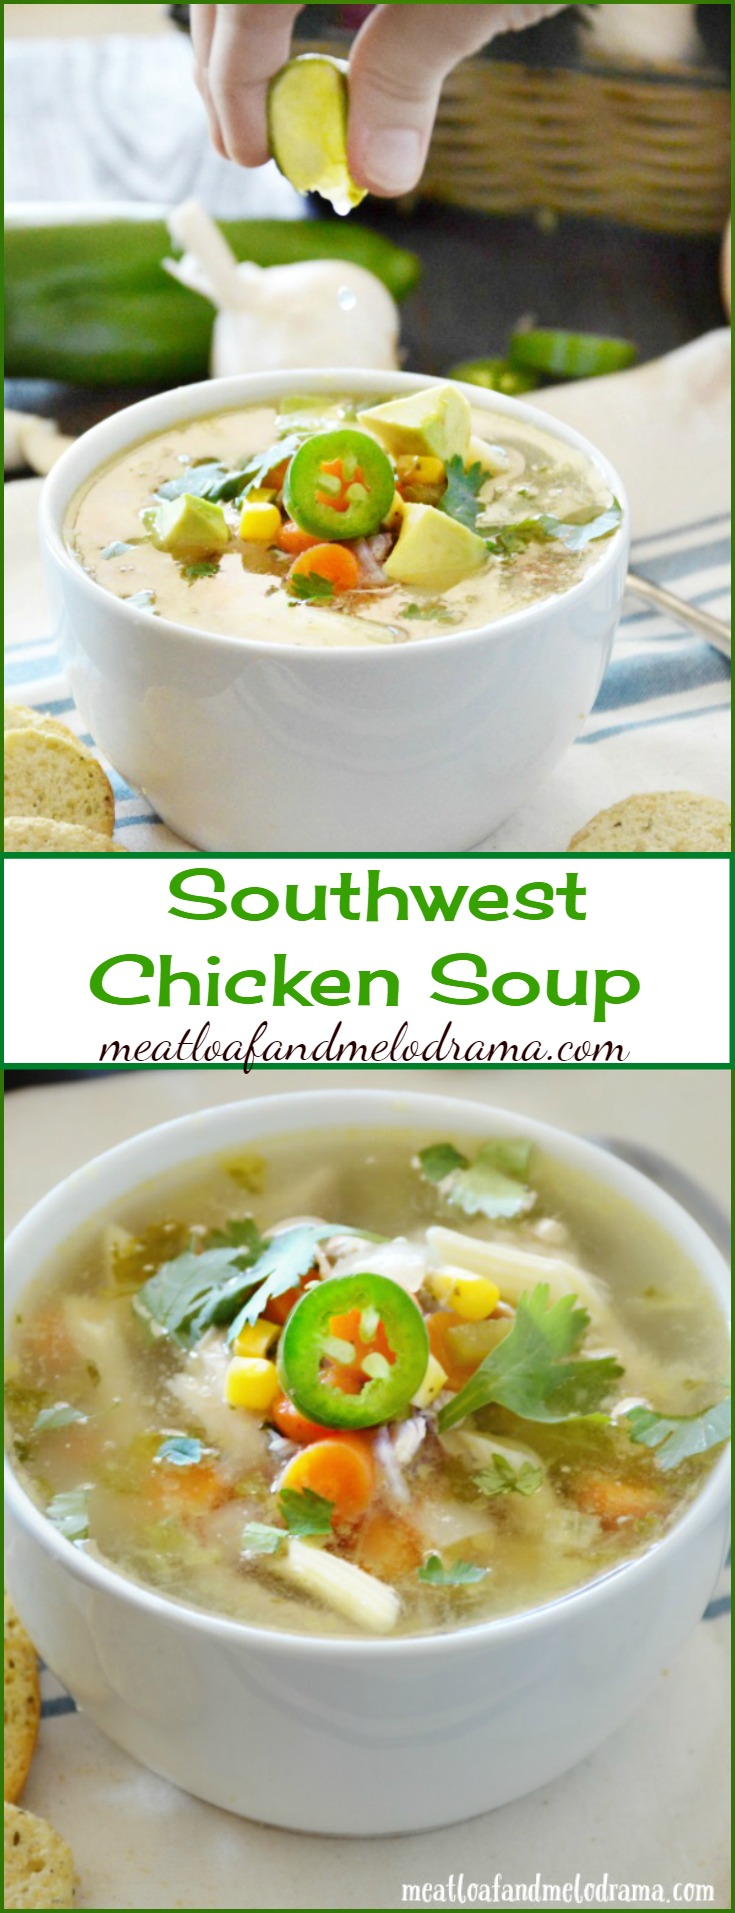 southwest-chicken-soup-recipe